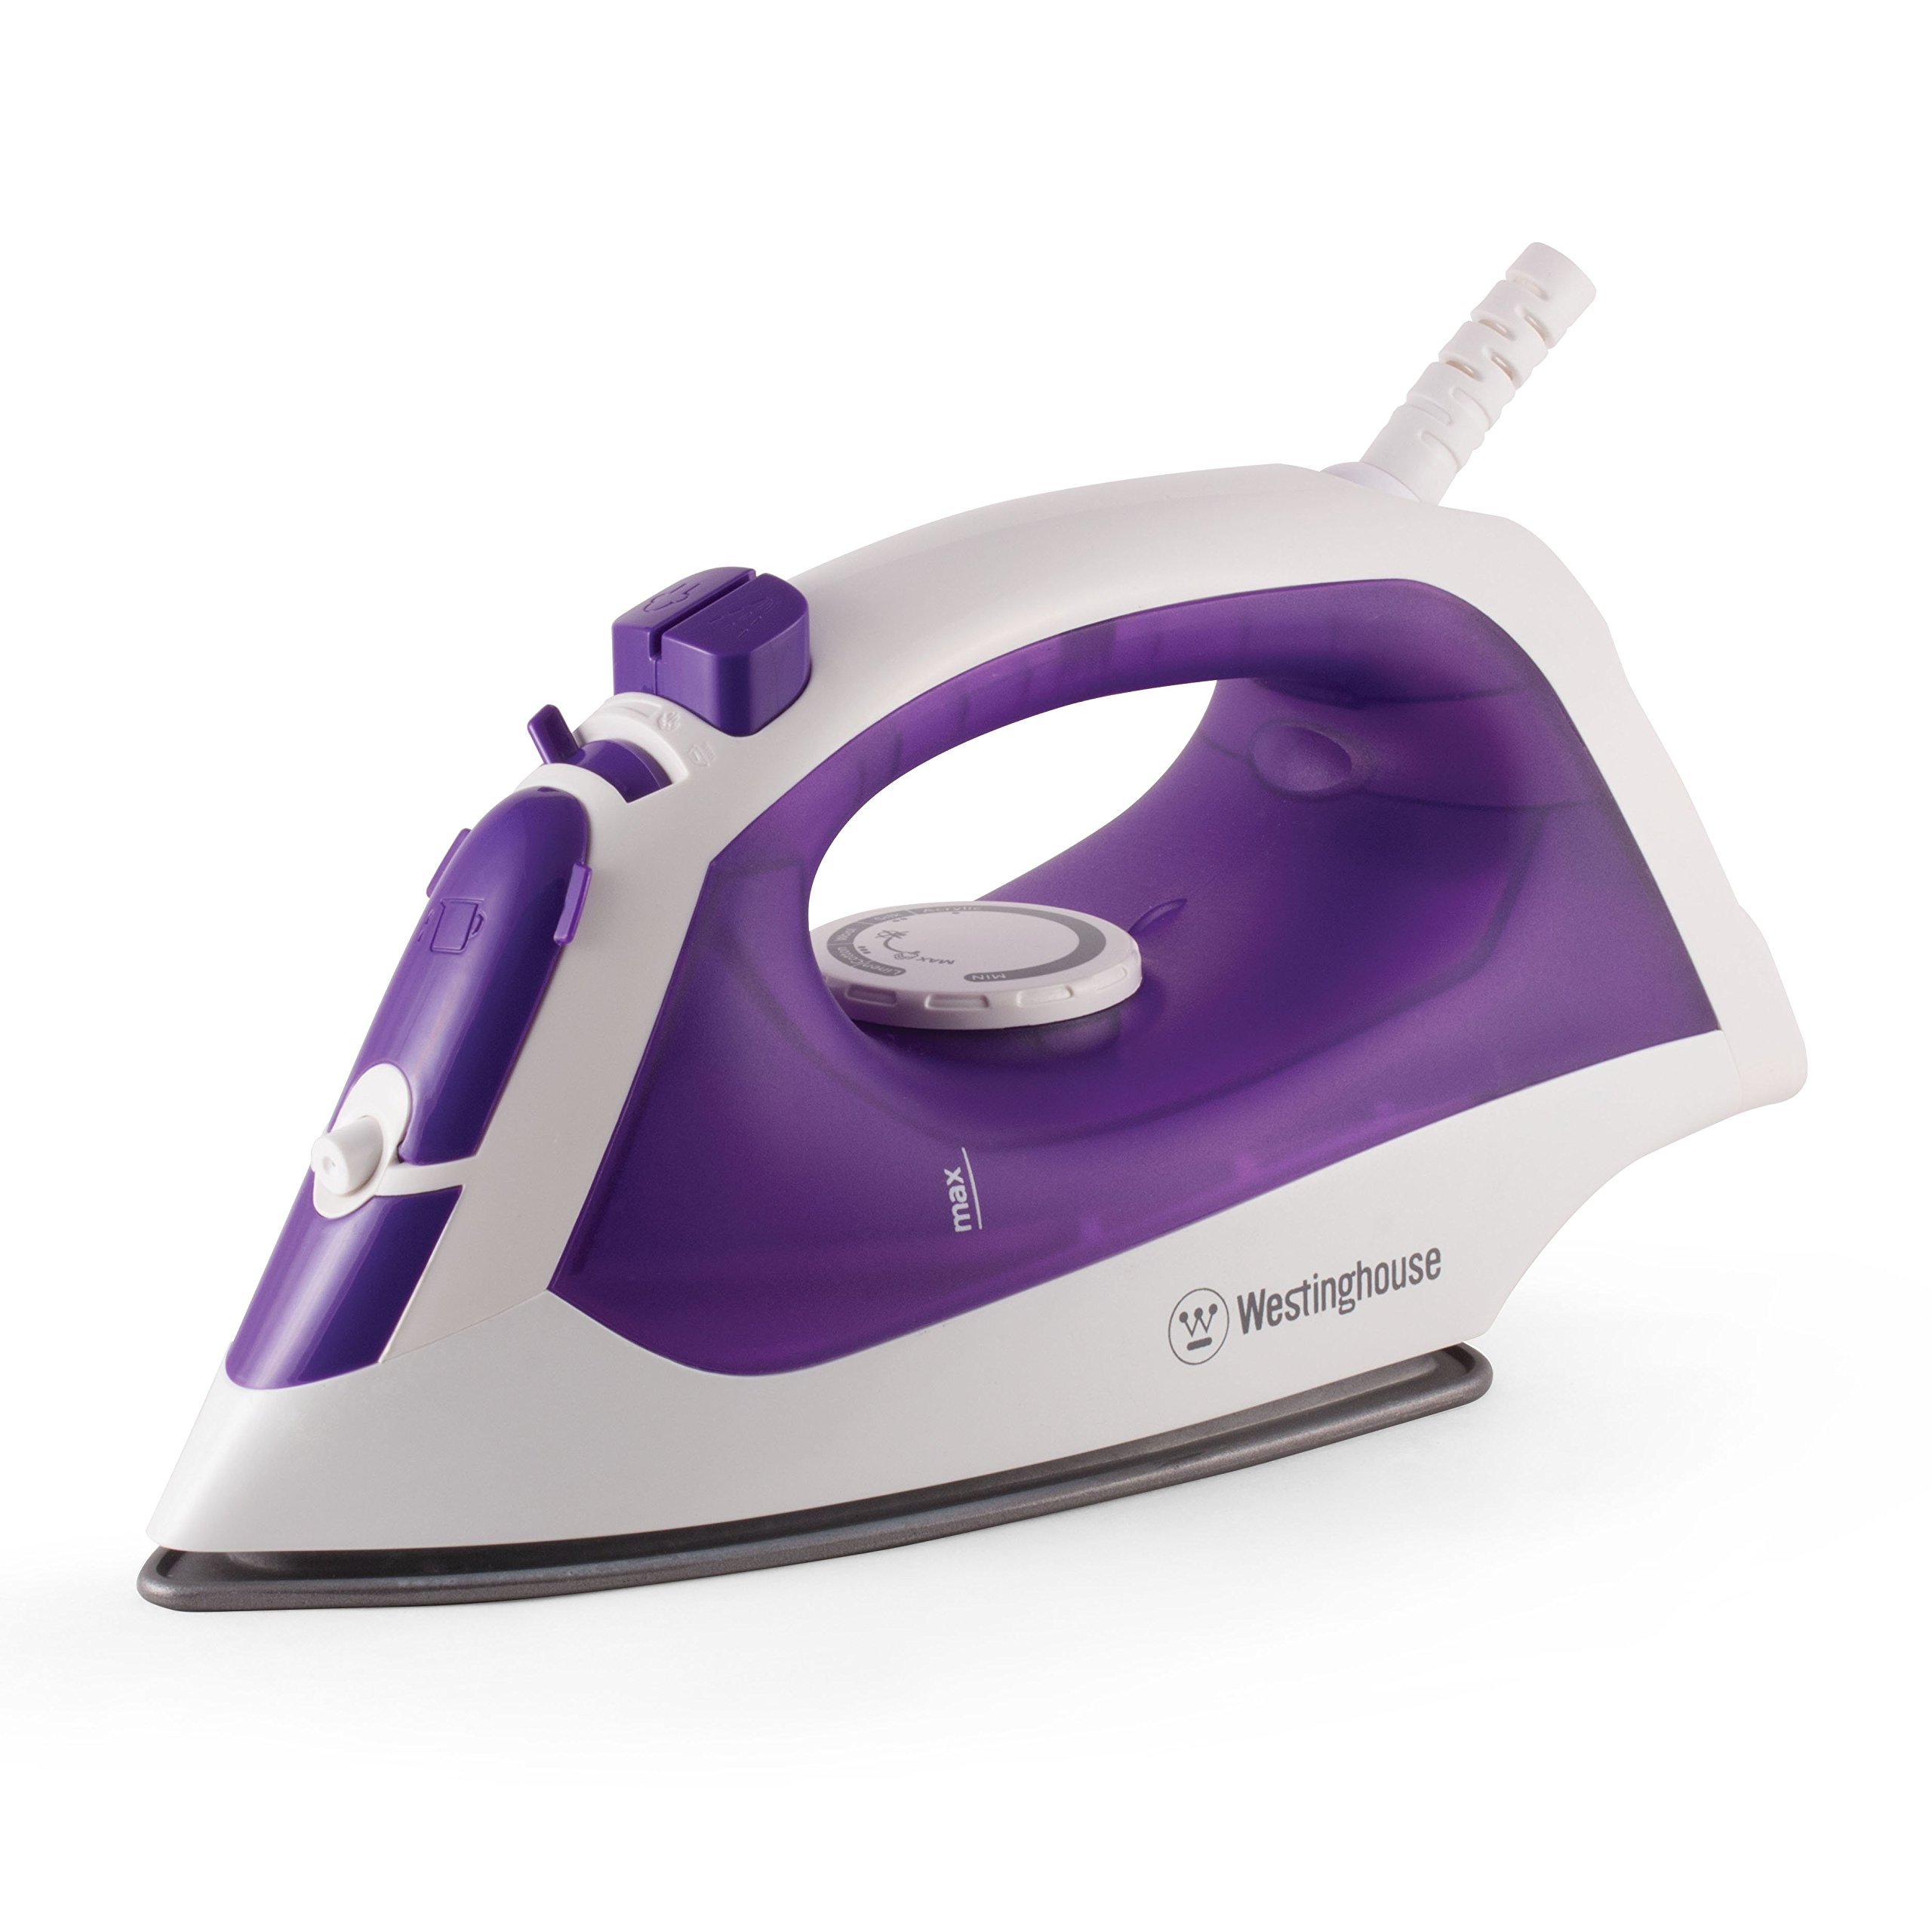 Westinghouse Pro-Series Steam Iron with 5.1 Ounce Water Tank, 1200 Watts, 3-Way Auto-Off Safety Function, White with Purple Accents